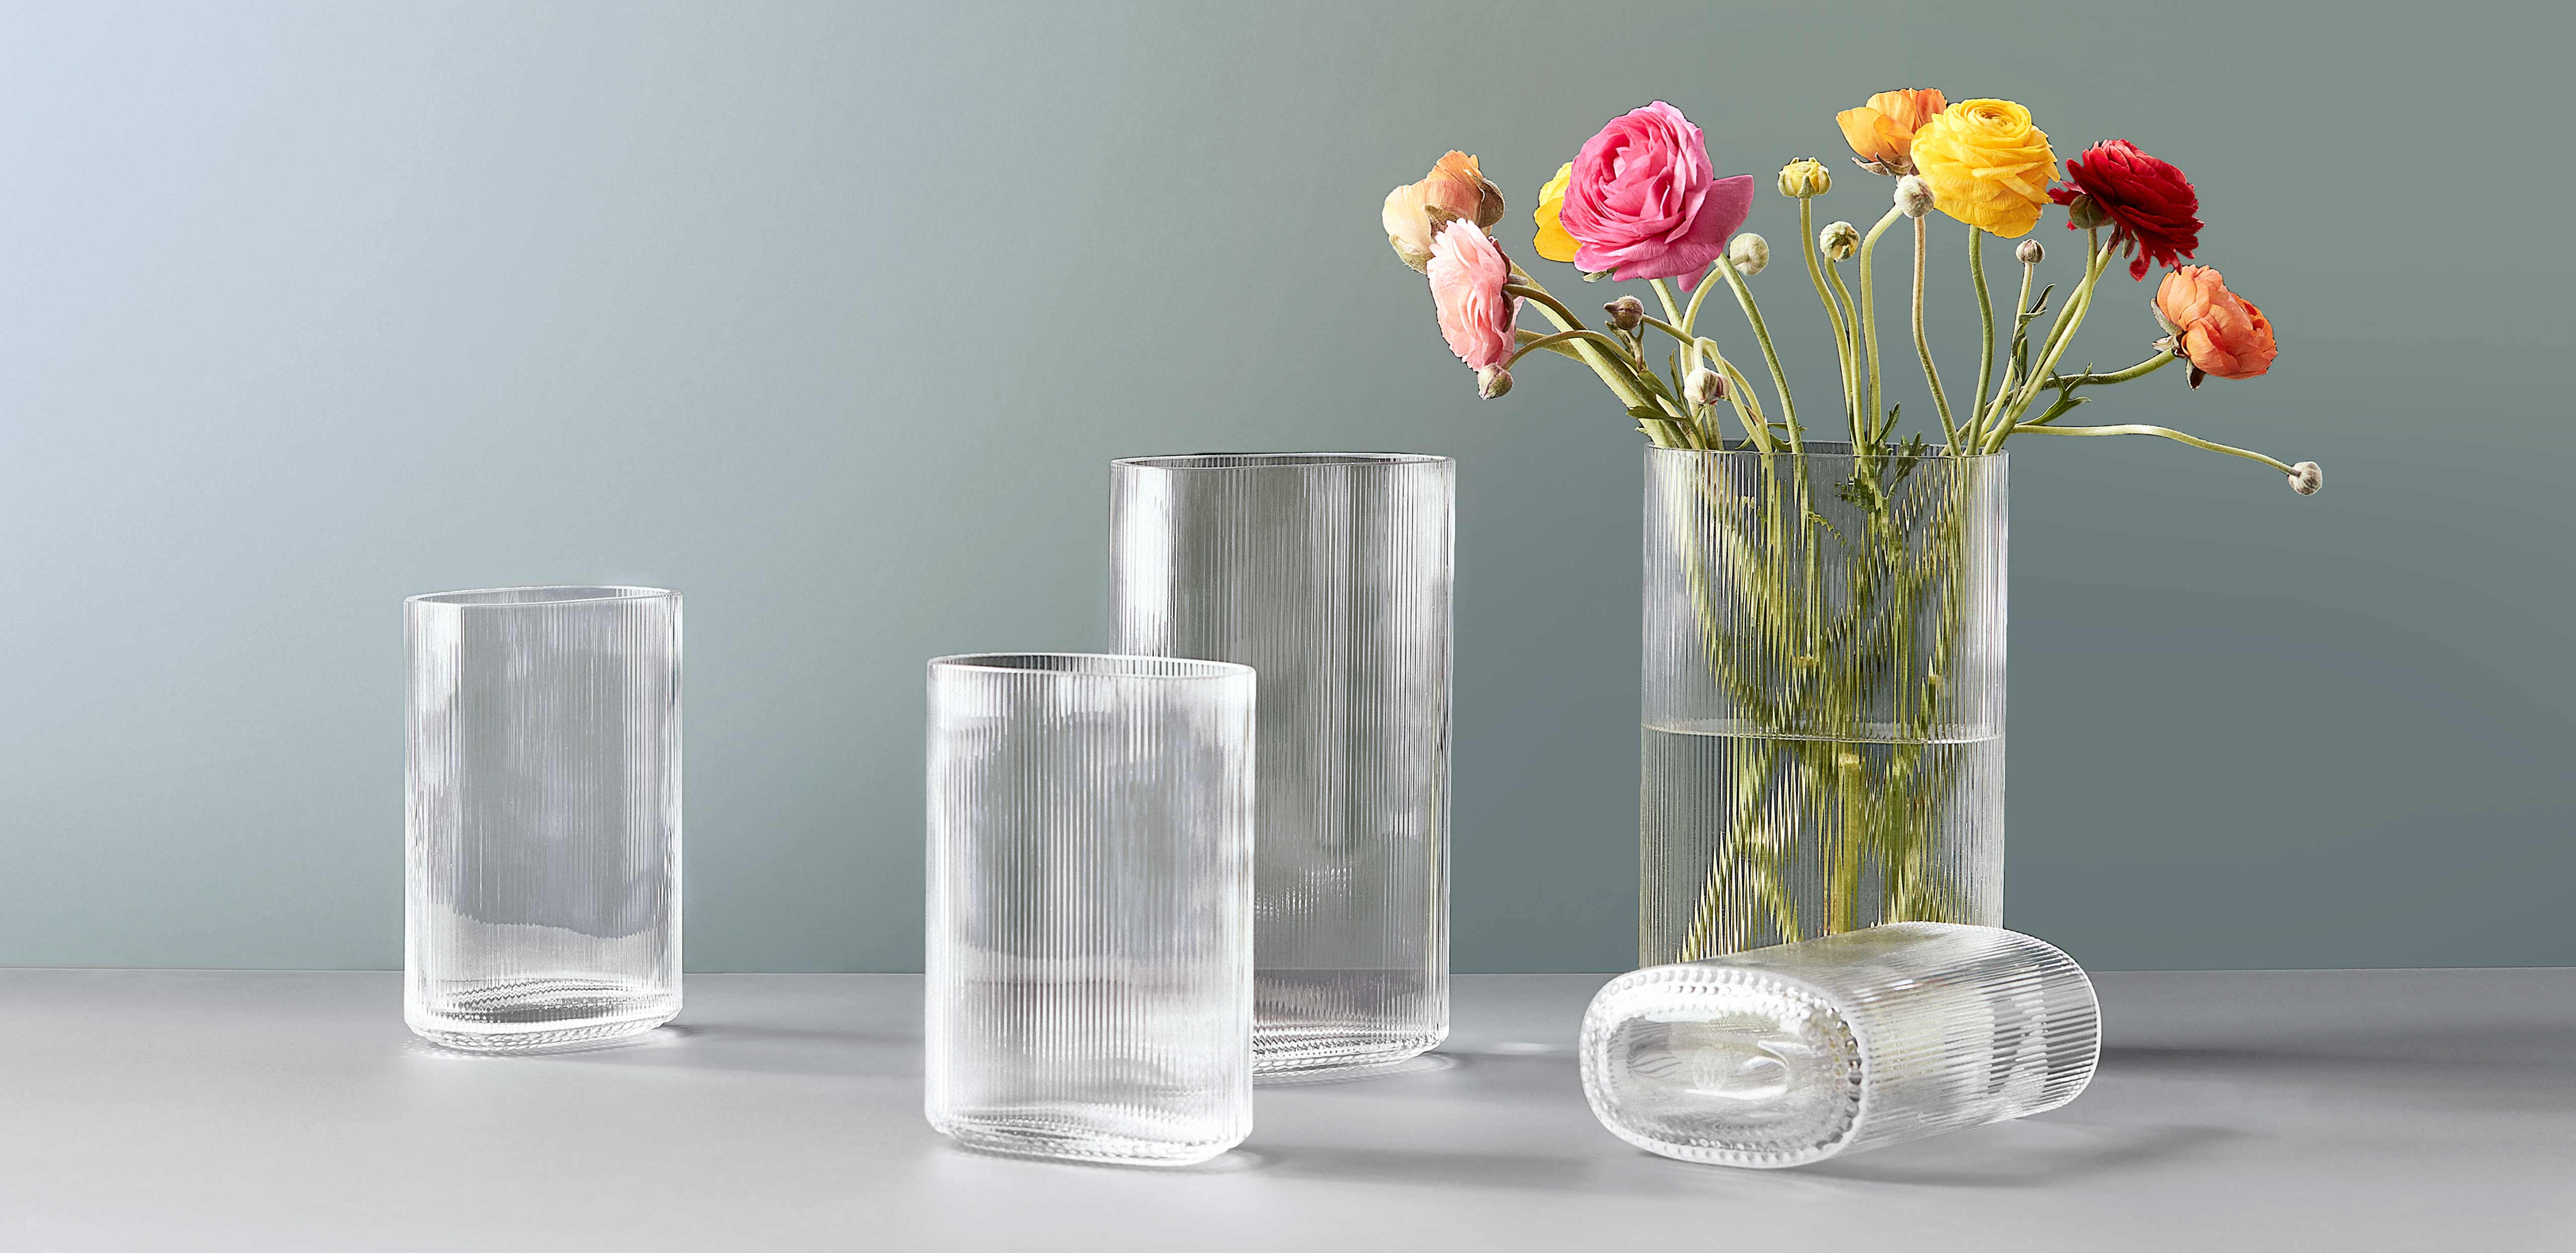 Arctic vase in different sizes with flowers